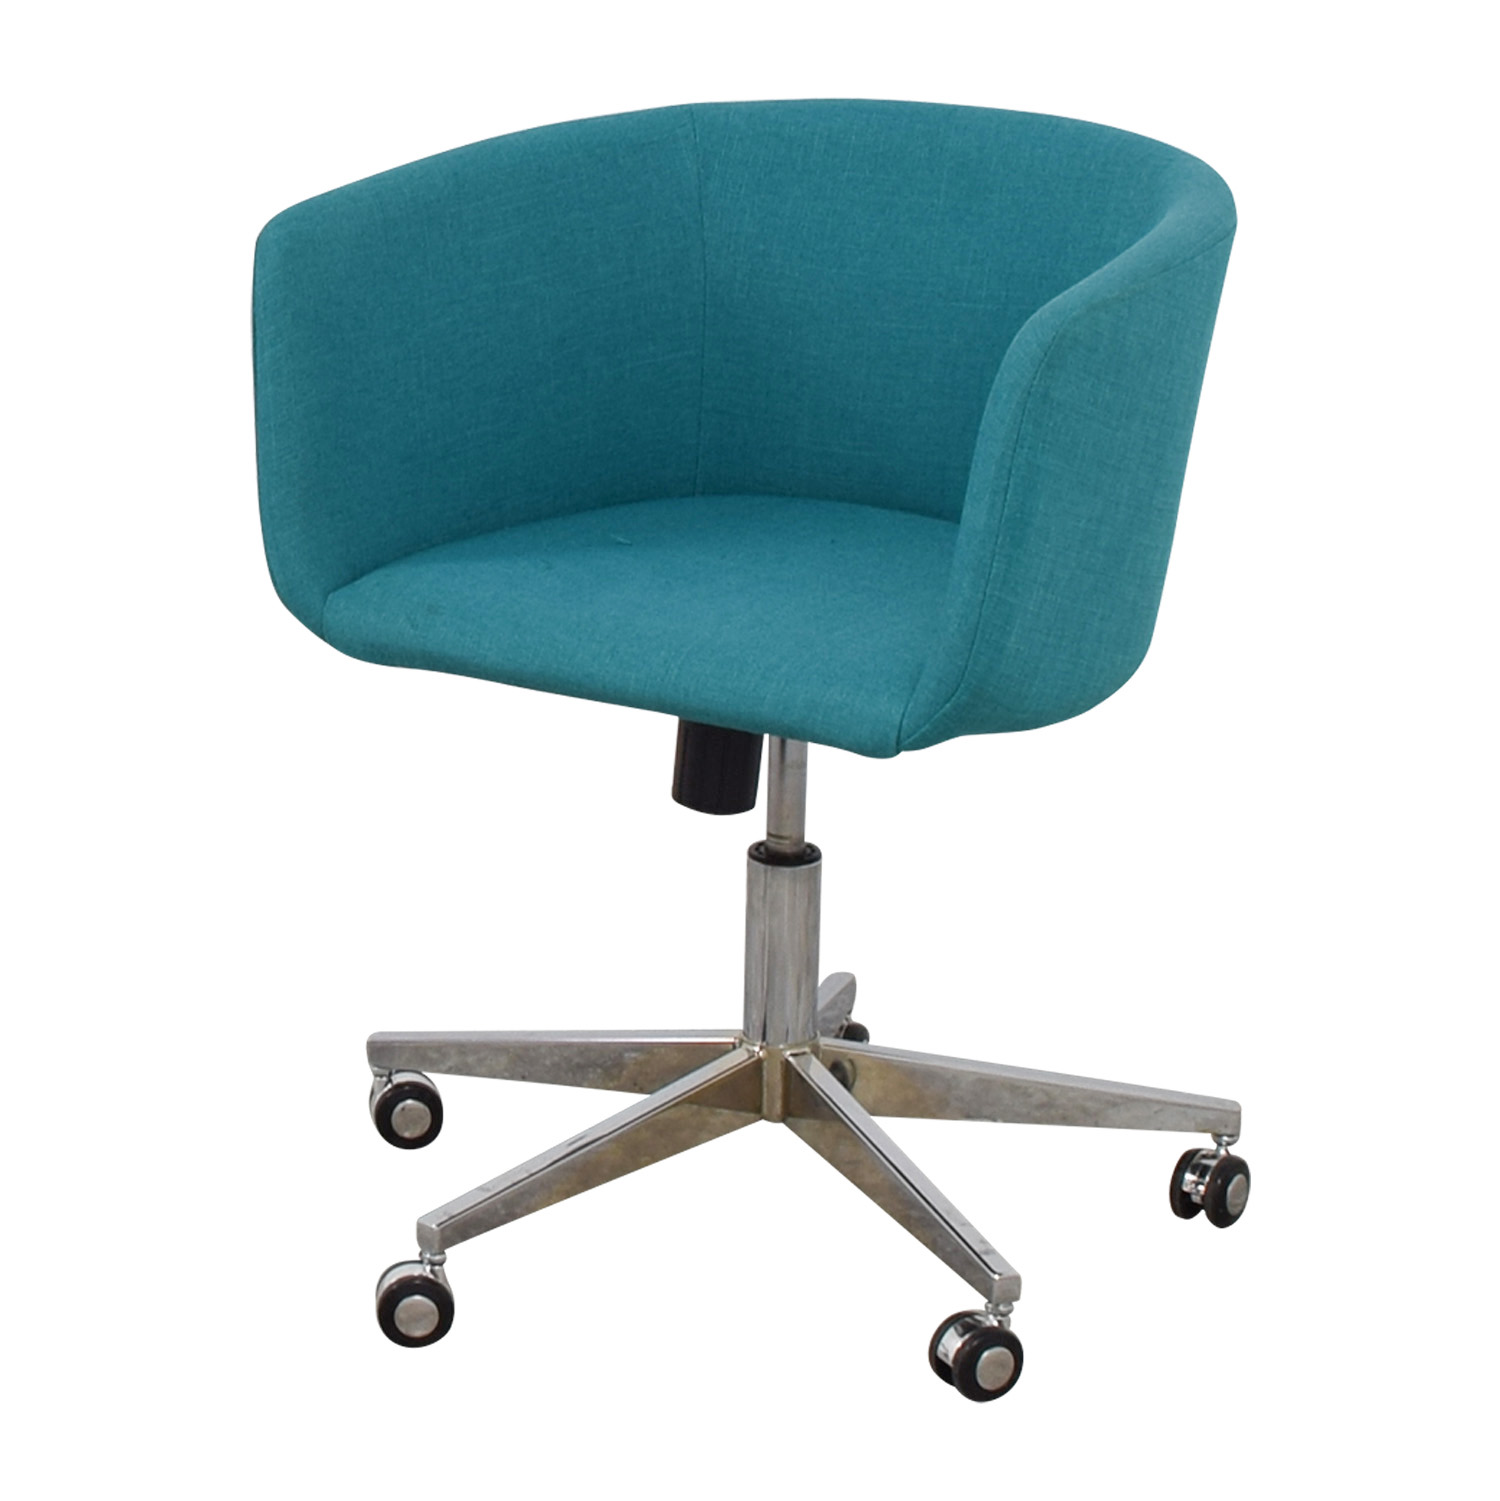 CB2 CB2 Teal Desk Chair with Castors second hand